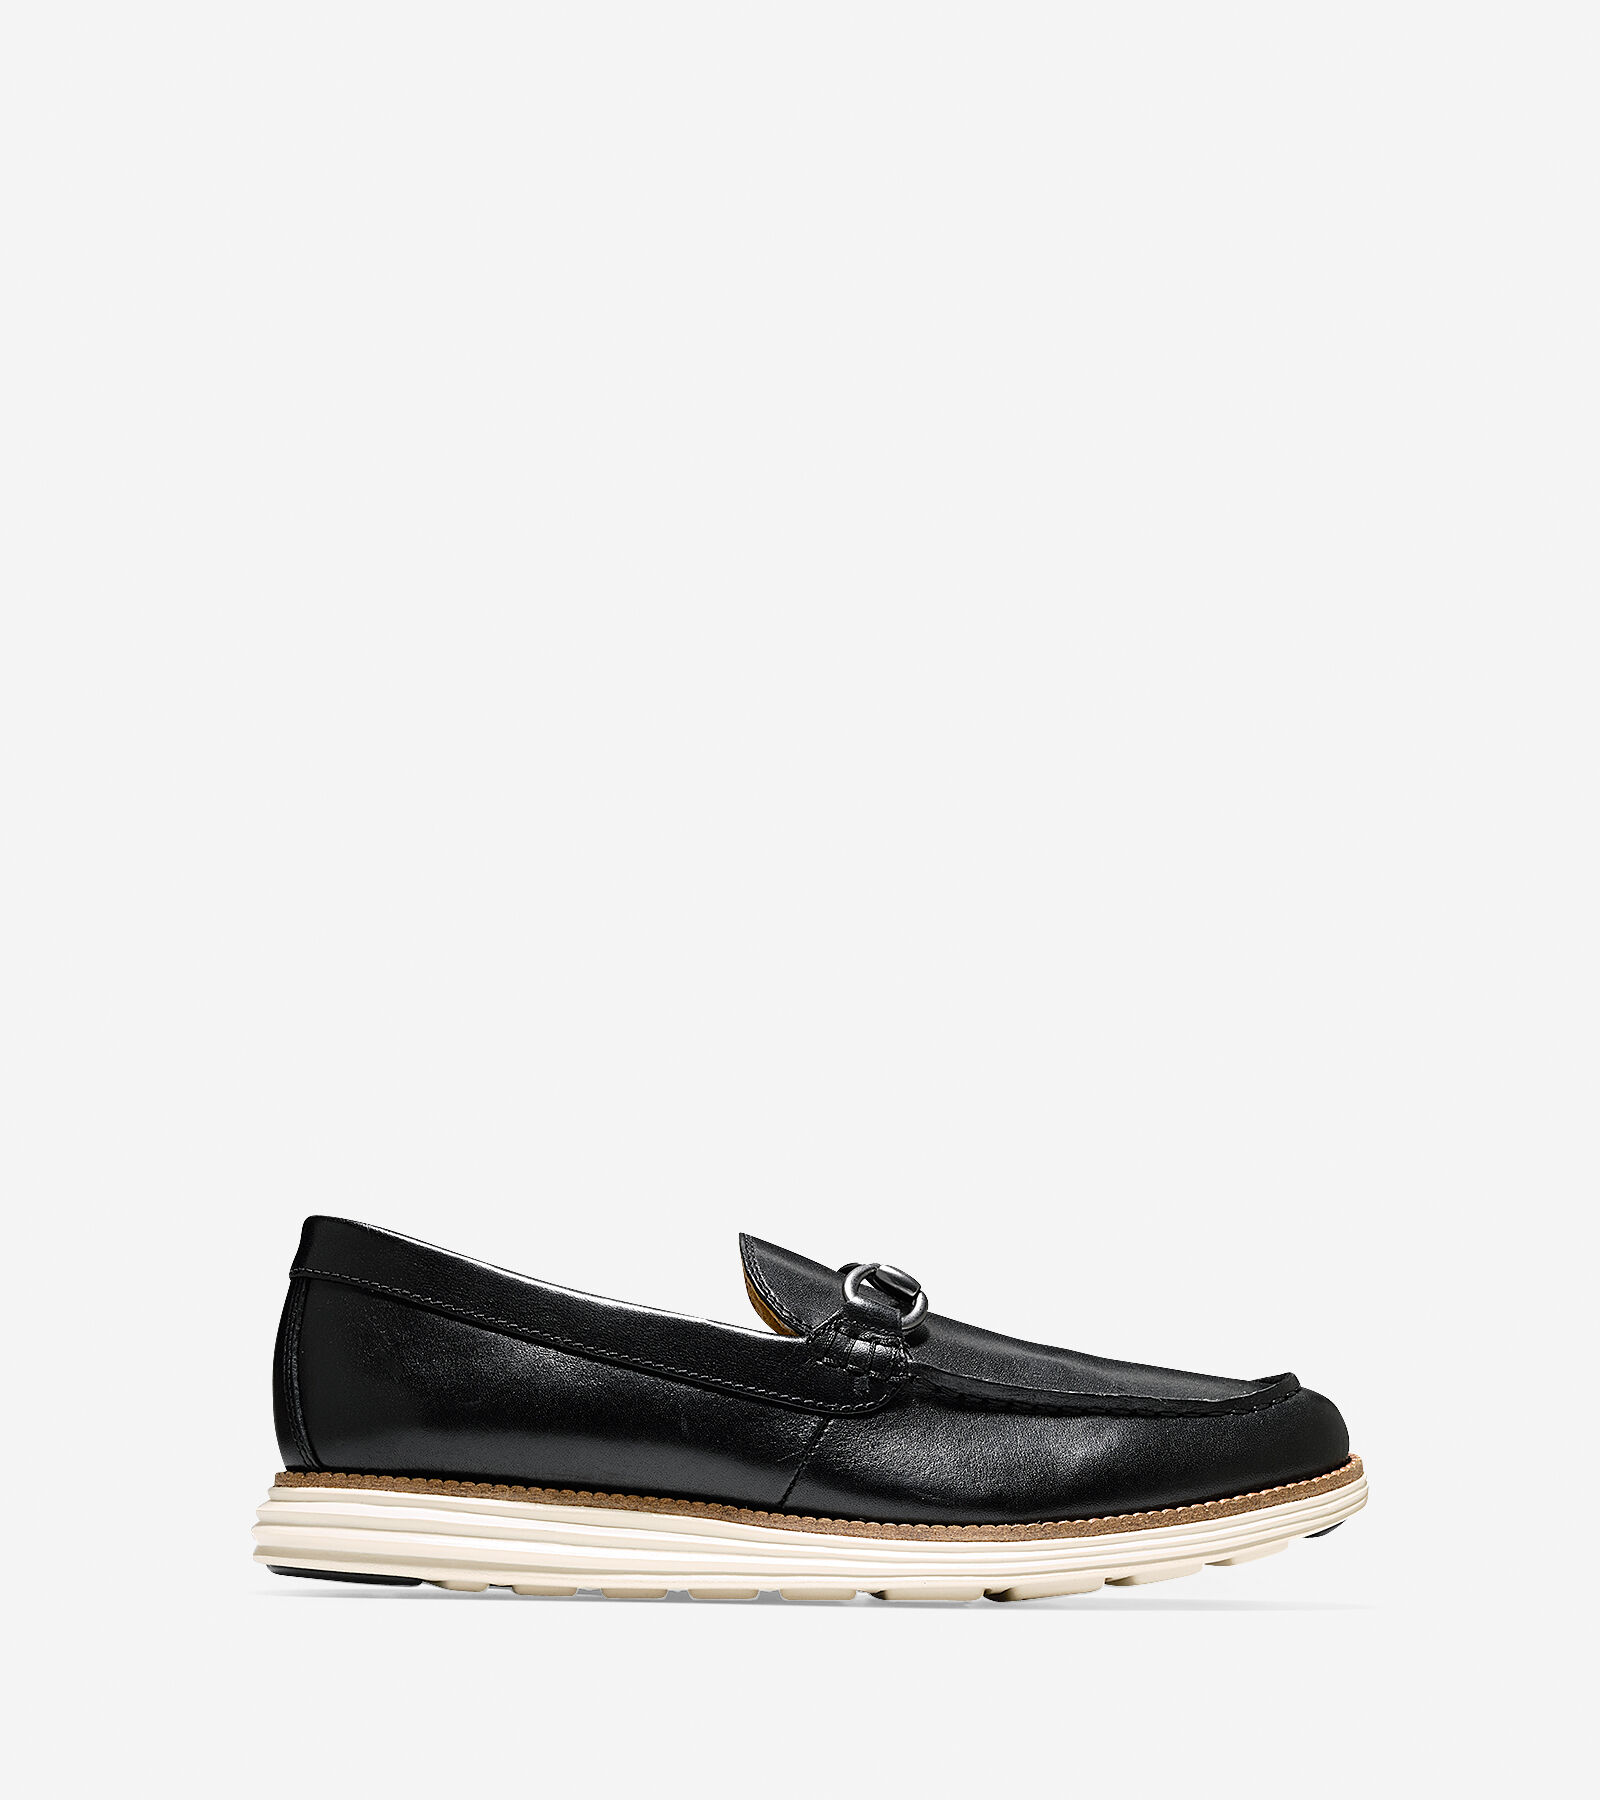 cole haan shoes smell avoidant attachment style 704071